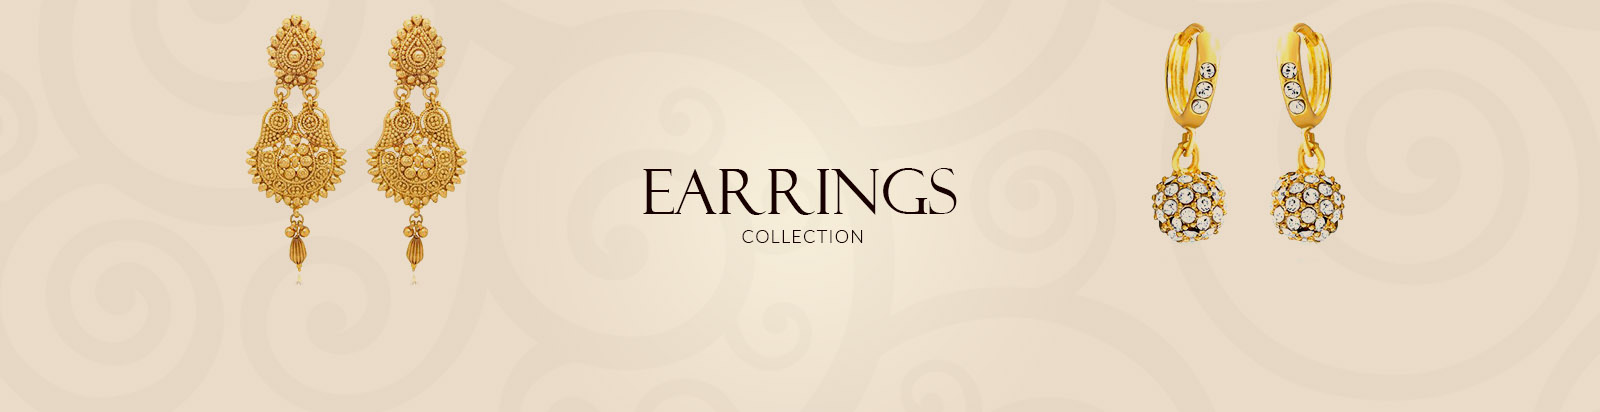 Stylish Gold Earrings for Women | Latest Design Stud Earrings